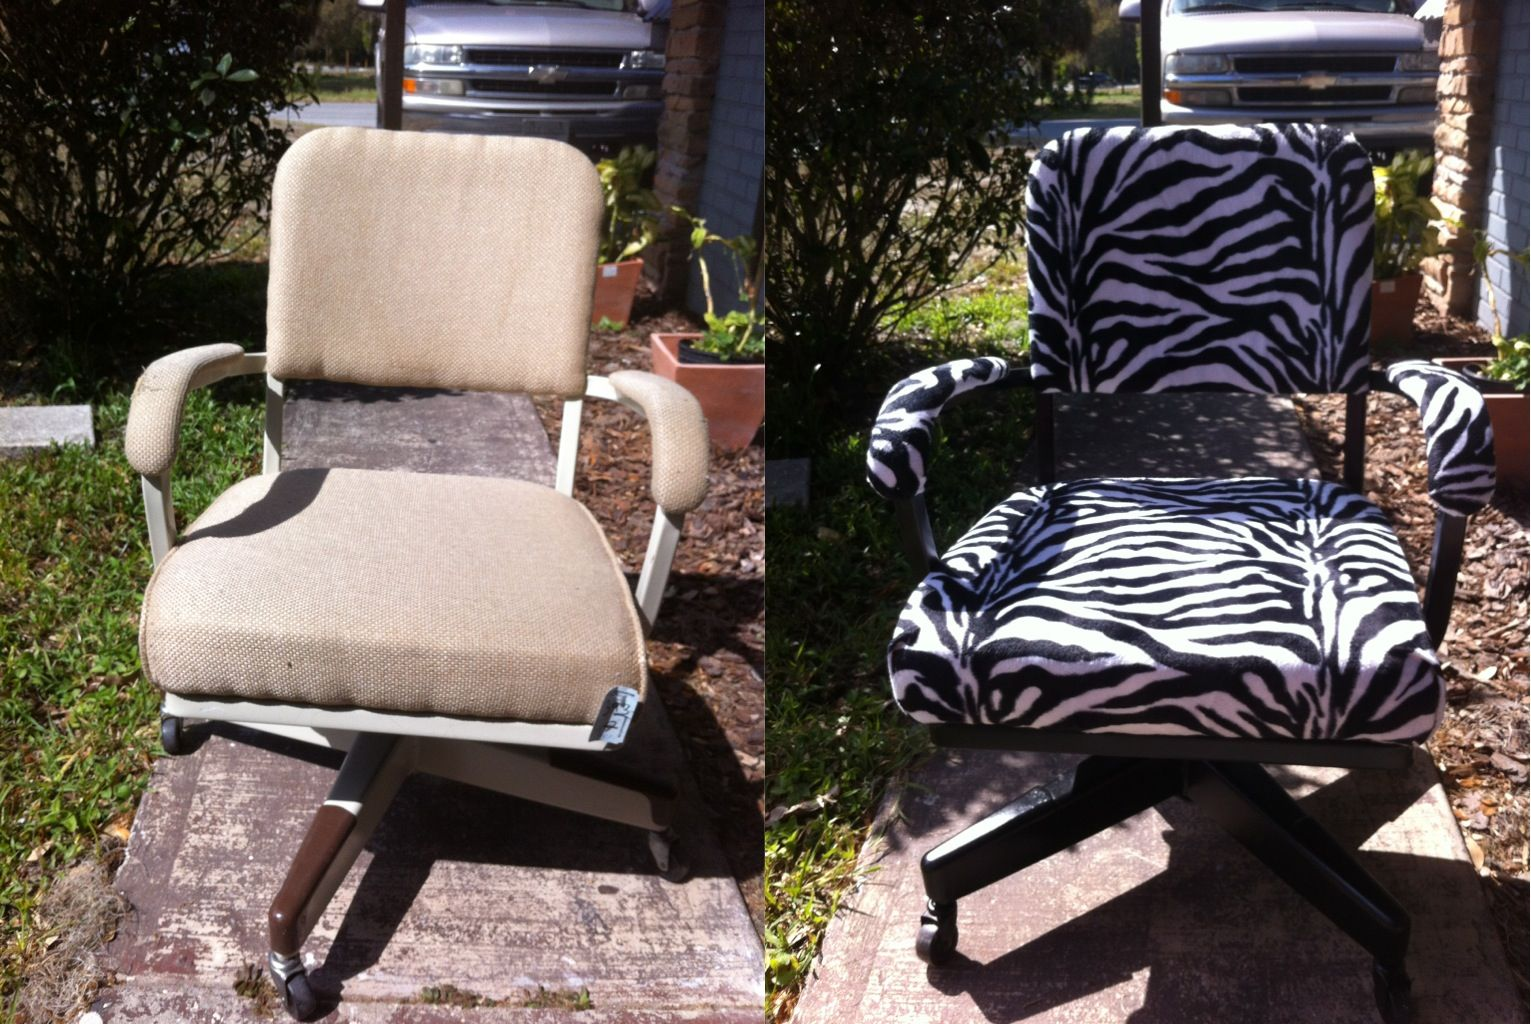 Zebra Desk Chair Ugly Office Or Desk Chair Makeover Redo 3 93 At The Thrift Store